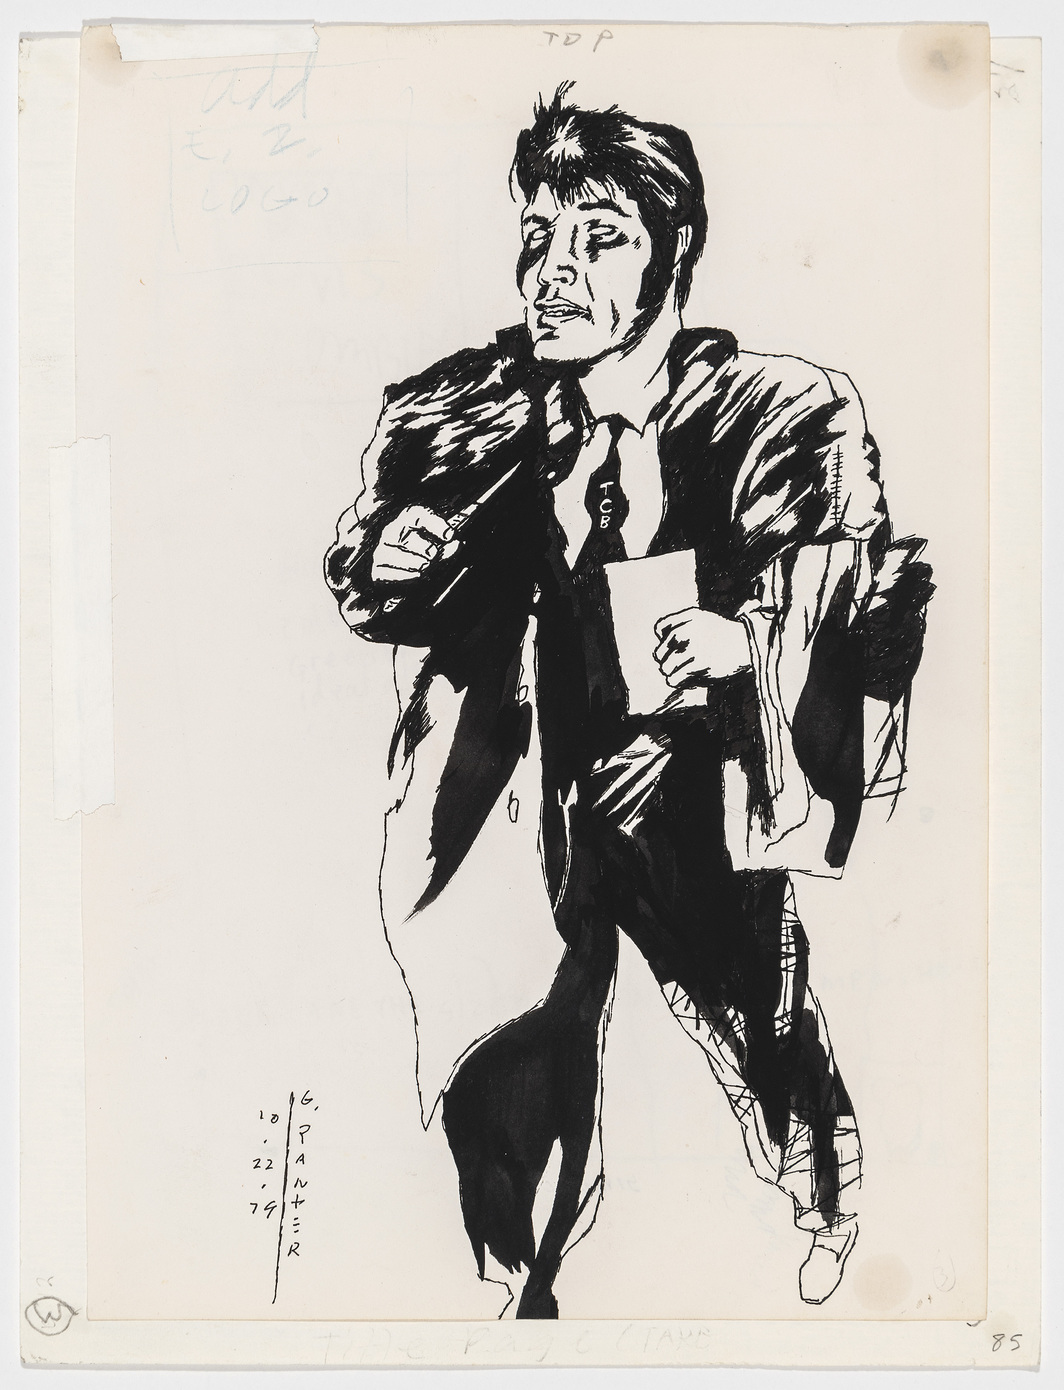 "Gary Panter, Elvis Zombie, 1979, ink on paper, 11 x 8 1/2""."